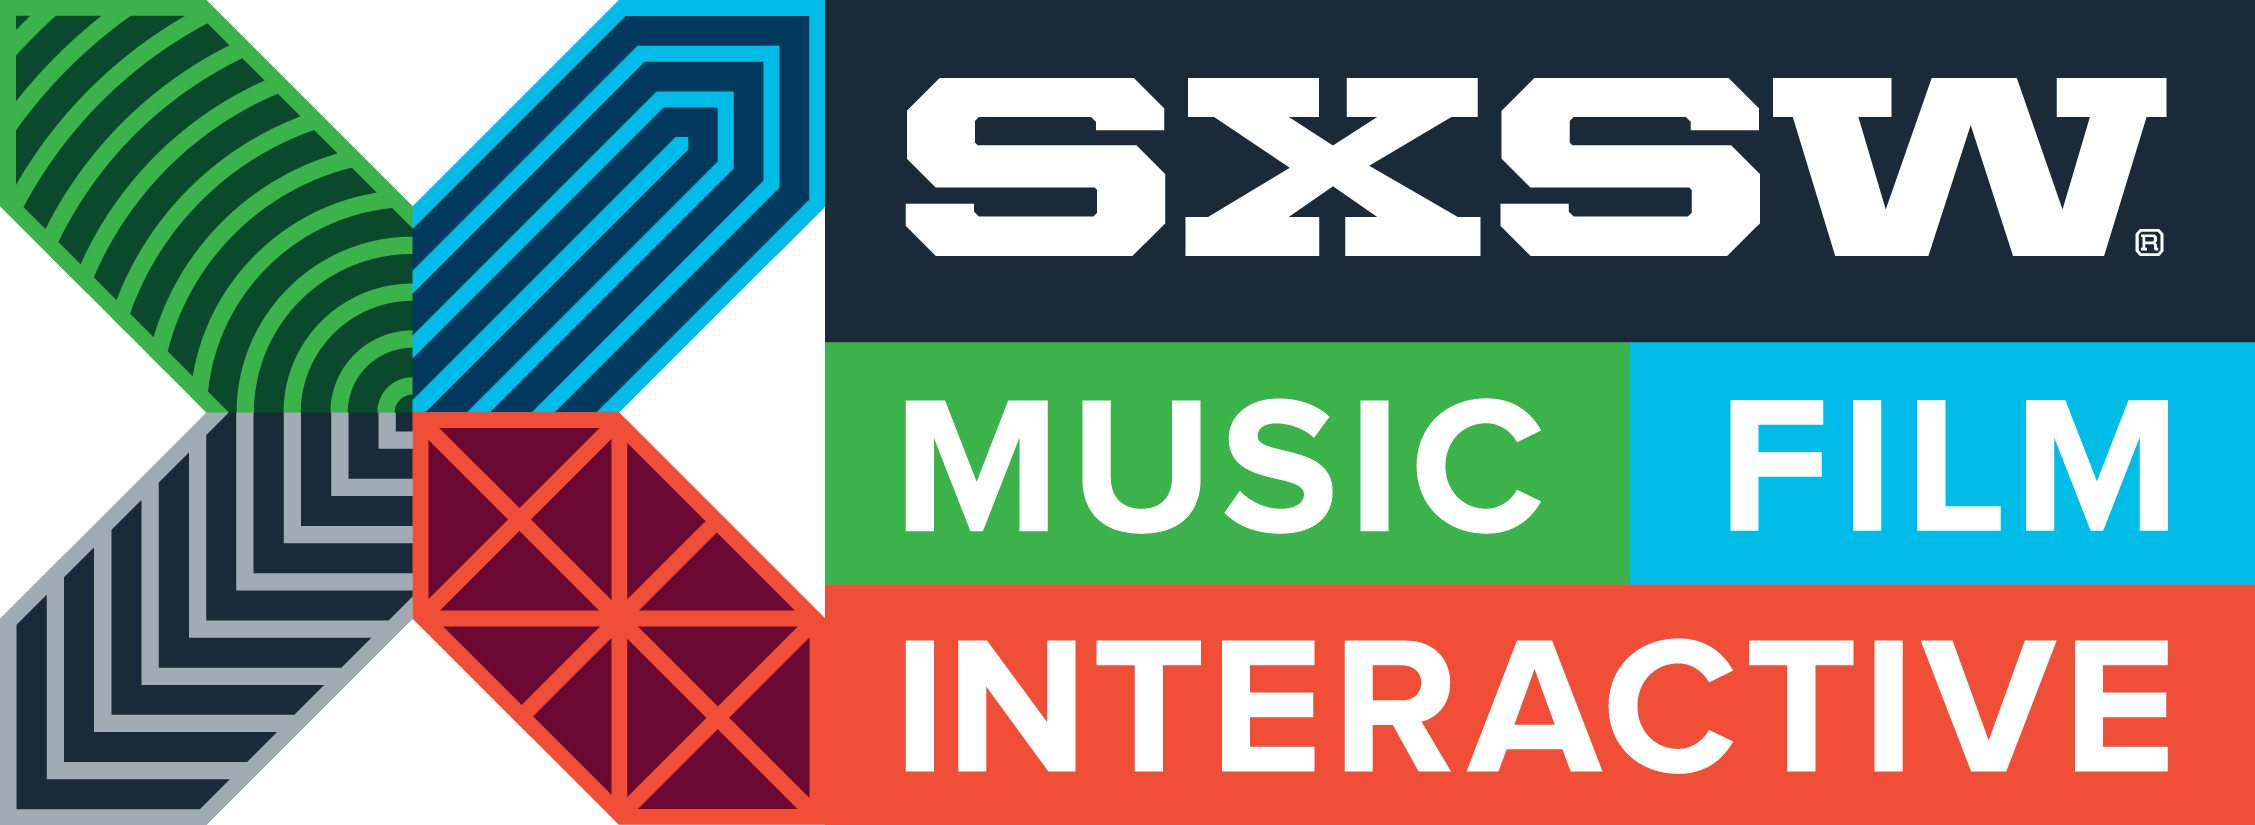 2015 SXSW Gaming Expo Starts Friday, Details